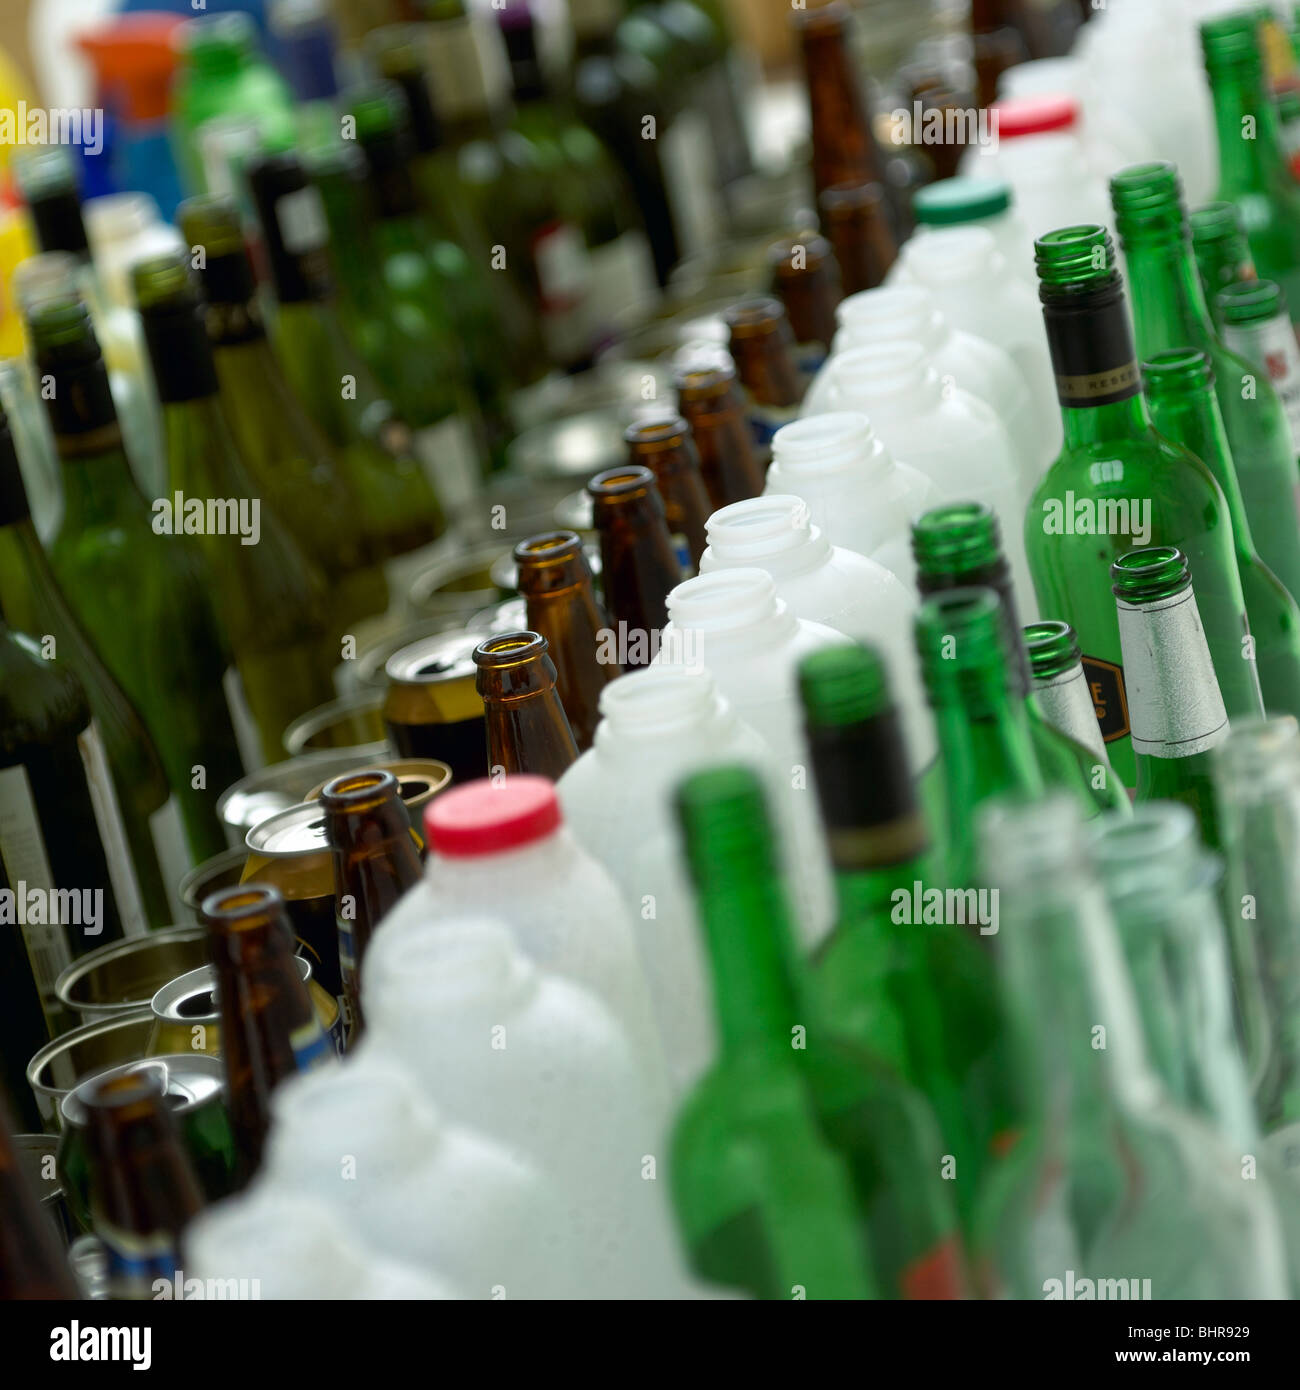 Bottles cans and tins lined up - Stock Image